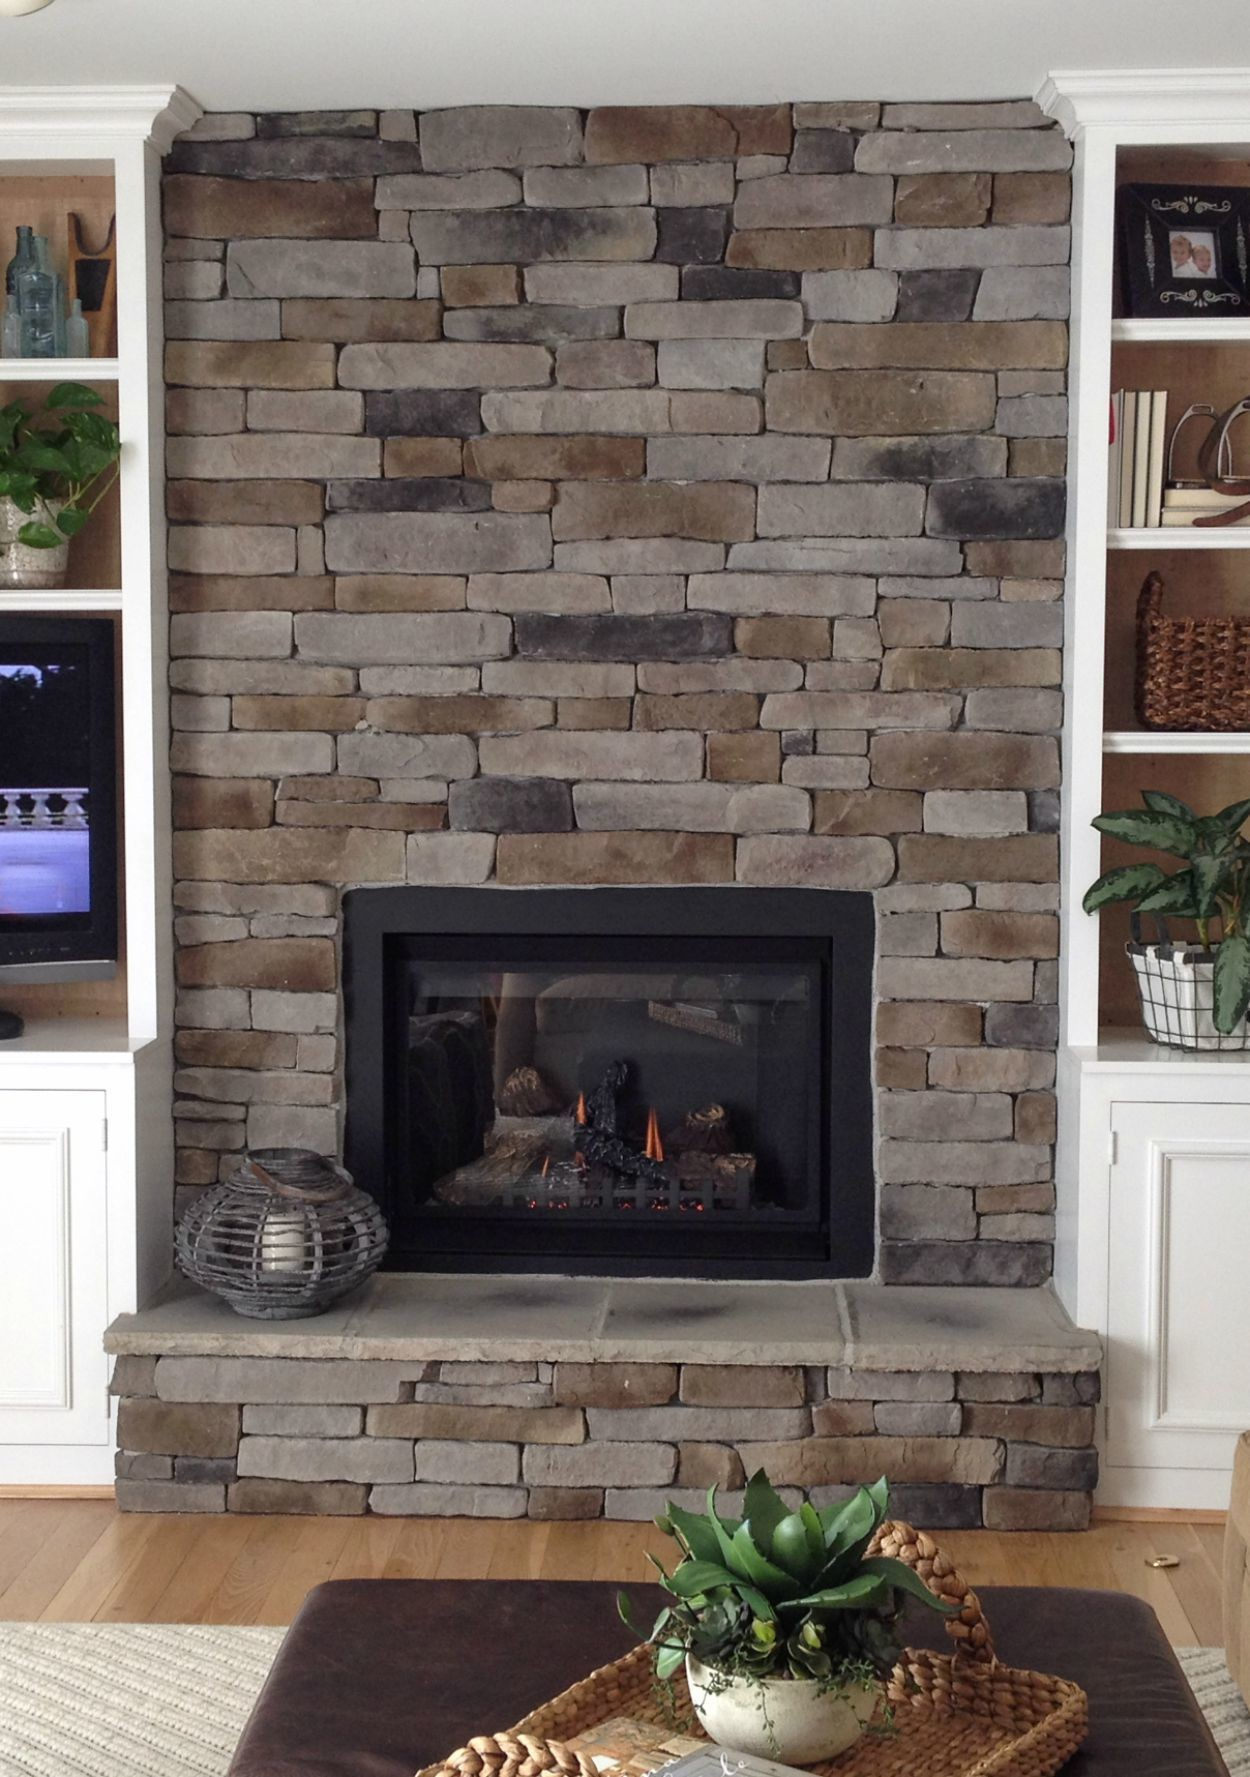 Stacked stone fireplaces are undeniably gorgeous and can turn what would otherwise be a plain